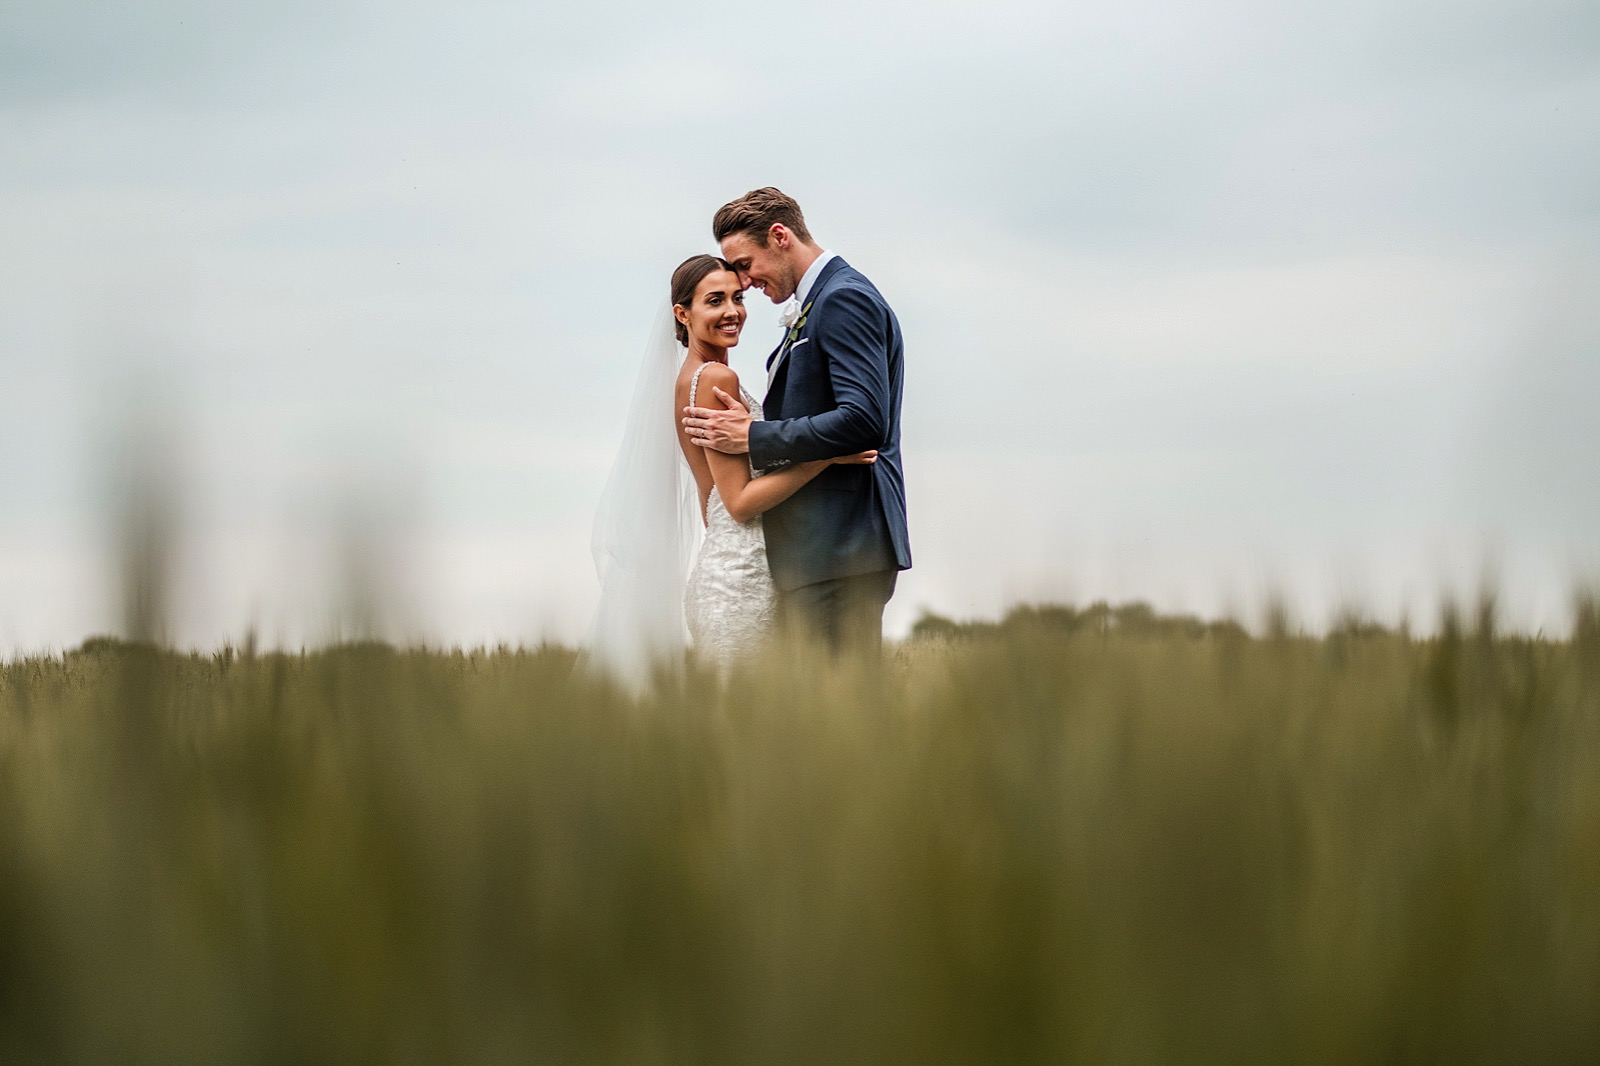 Bride & groom embracing in fields